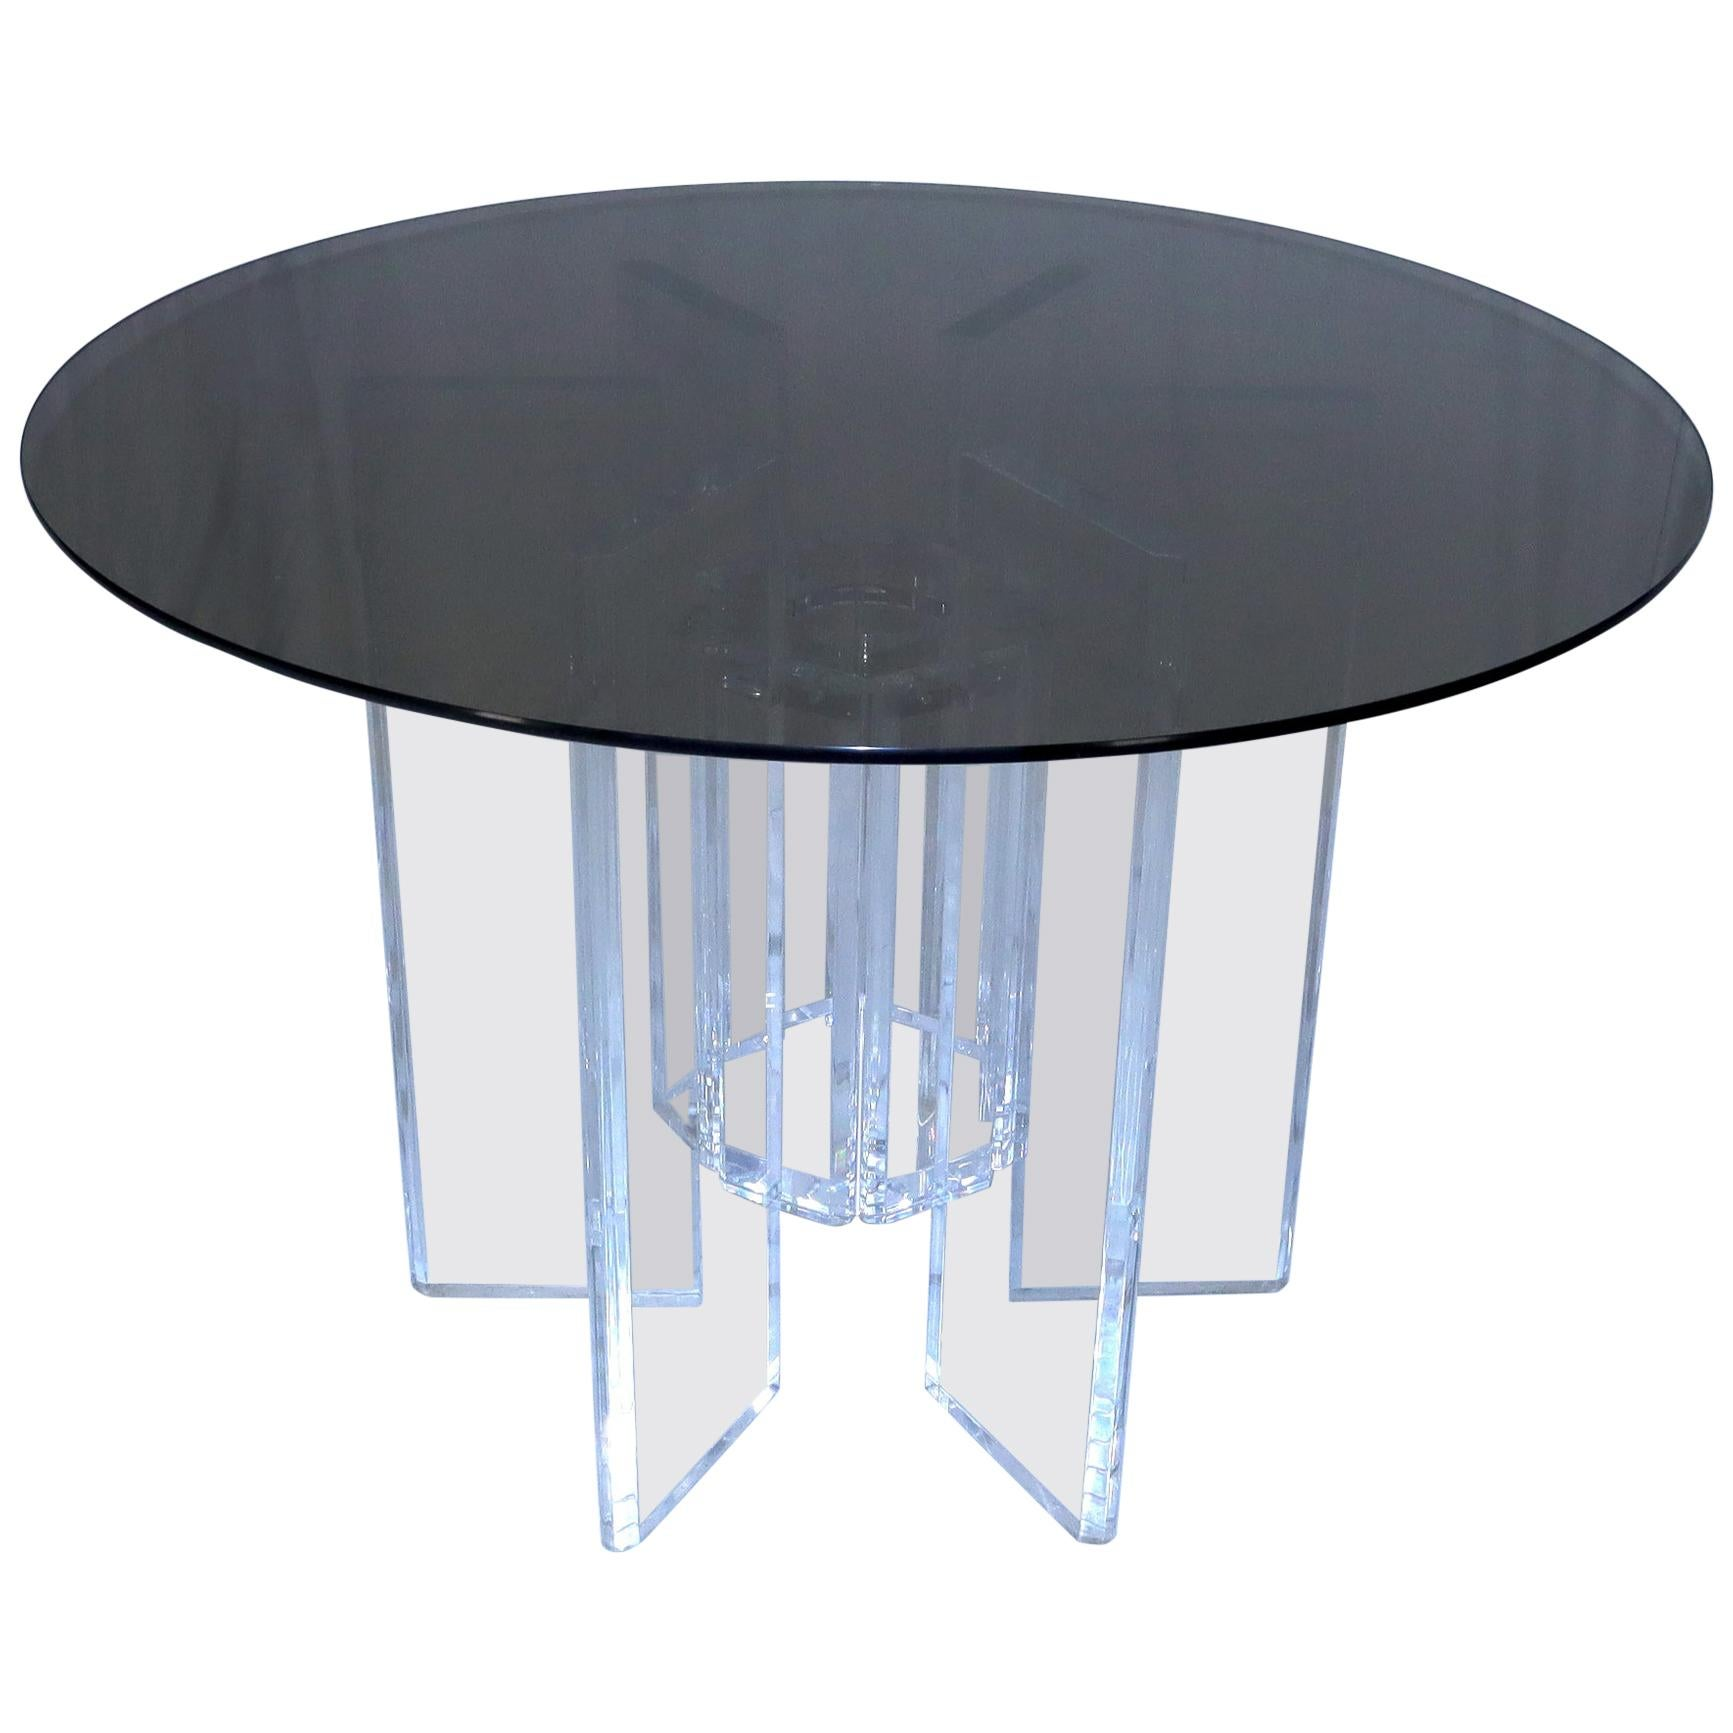 Heavy Massive Lucite Base Round Bronze Smoked Glass Top Dining Conference Table